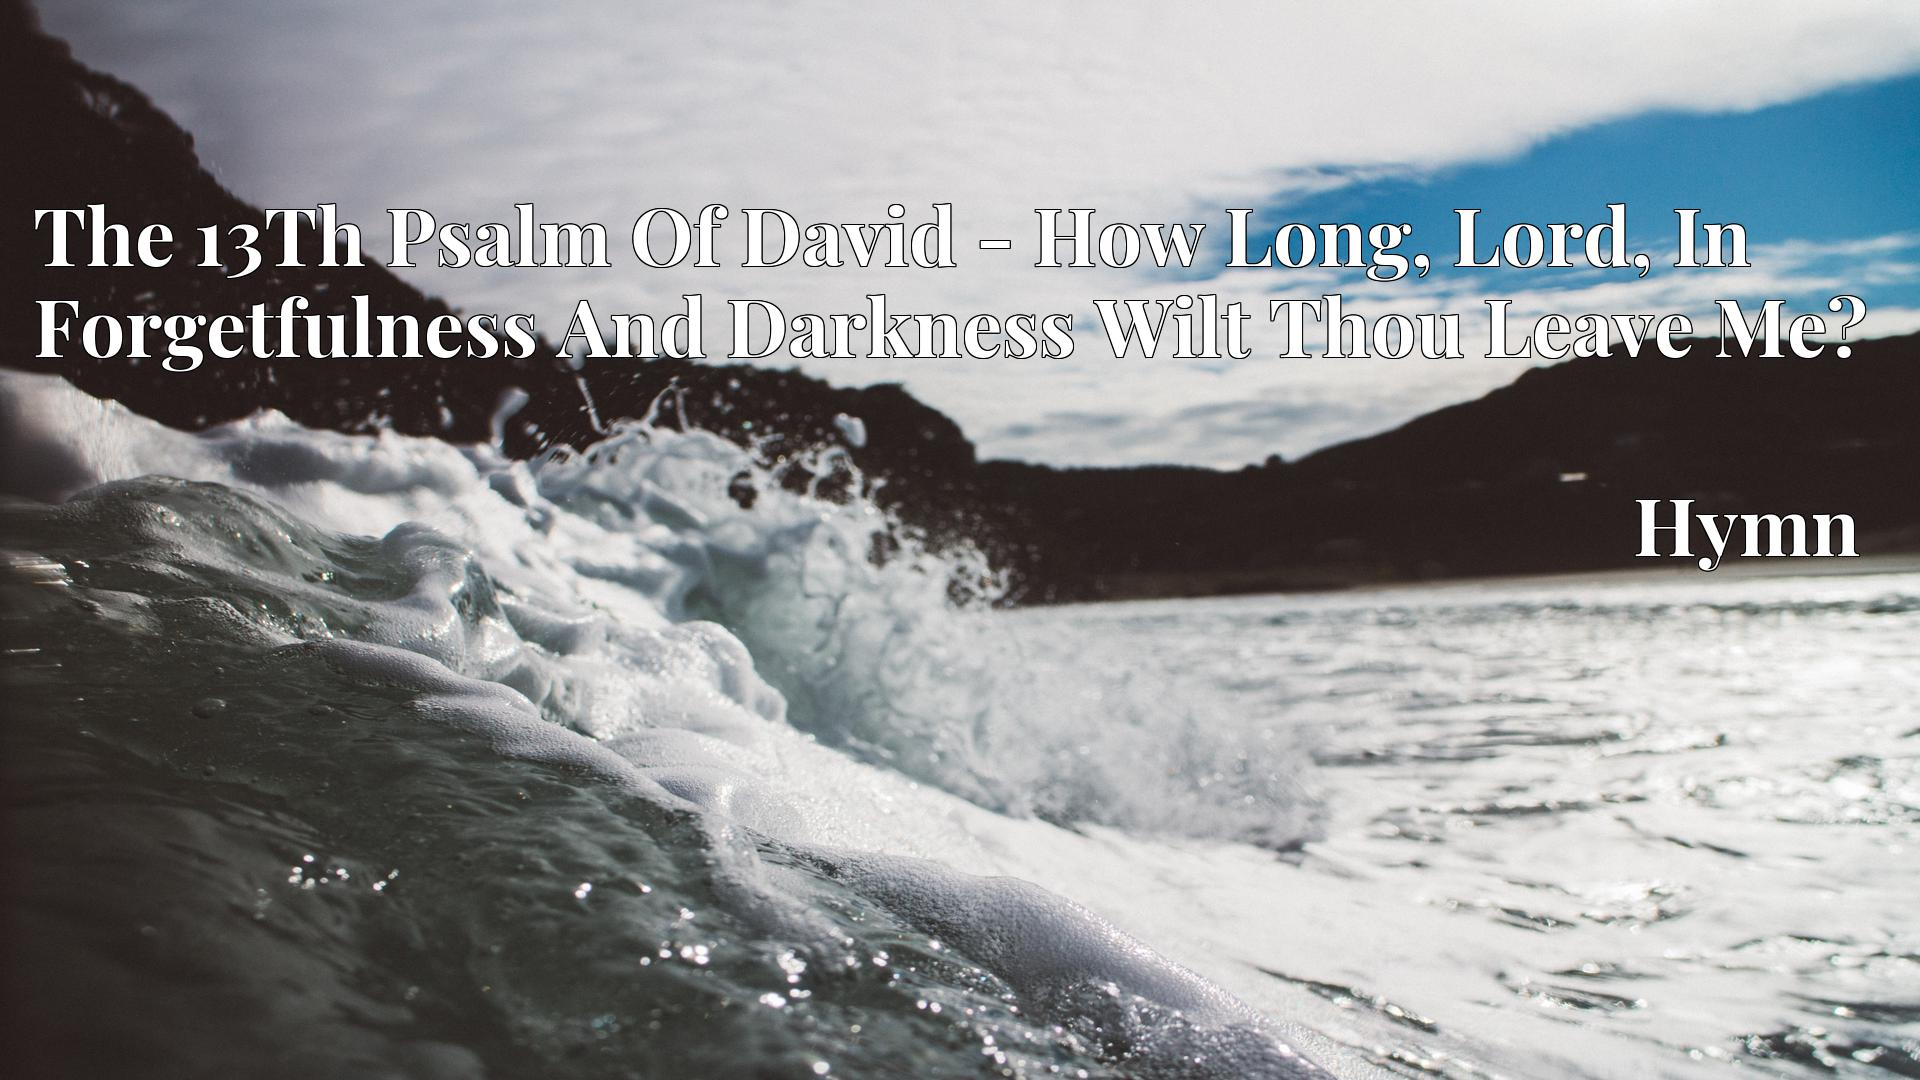 The 13Th Psalm Of David - How Long, Lord, In Forgetfulness And Darkness Wilt Thou Leave Me? - Hymn